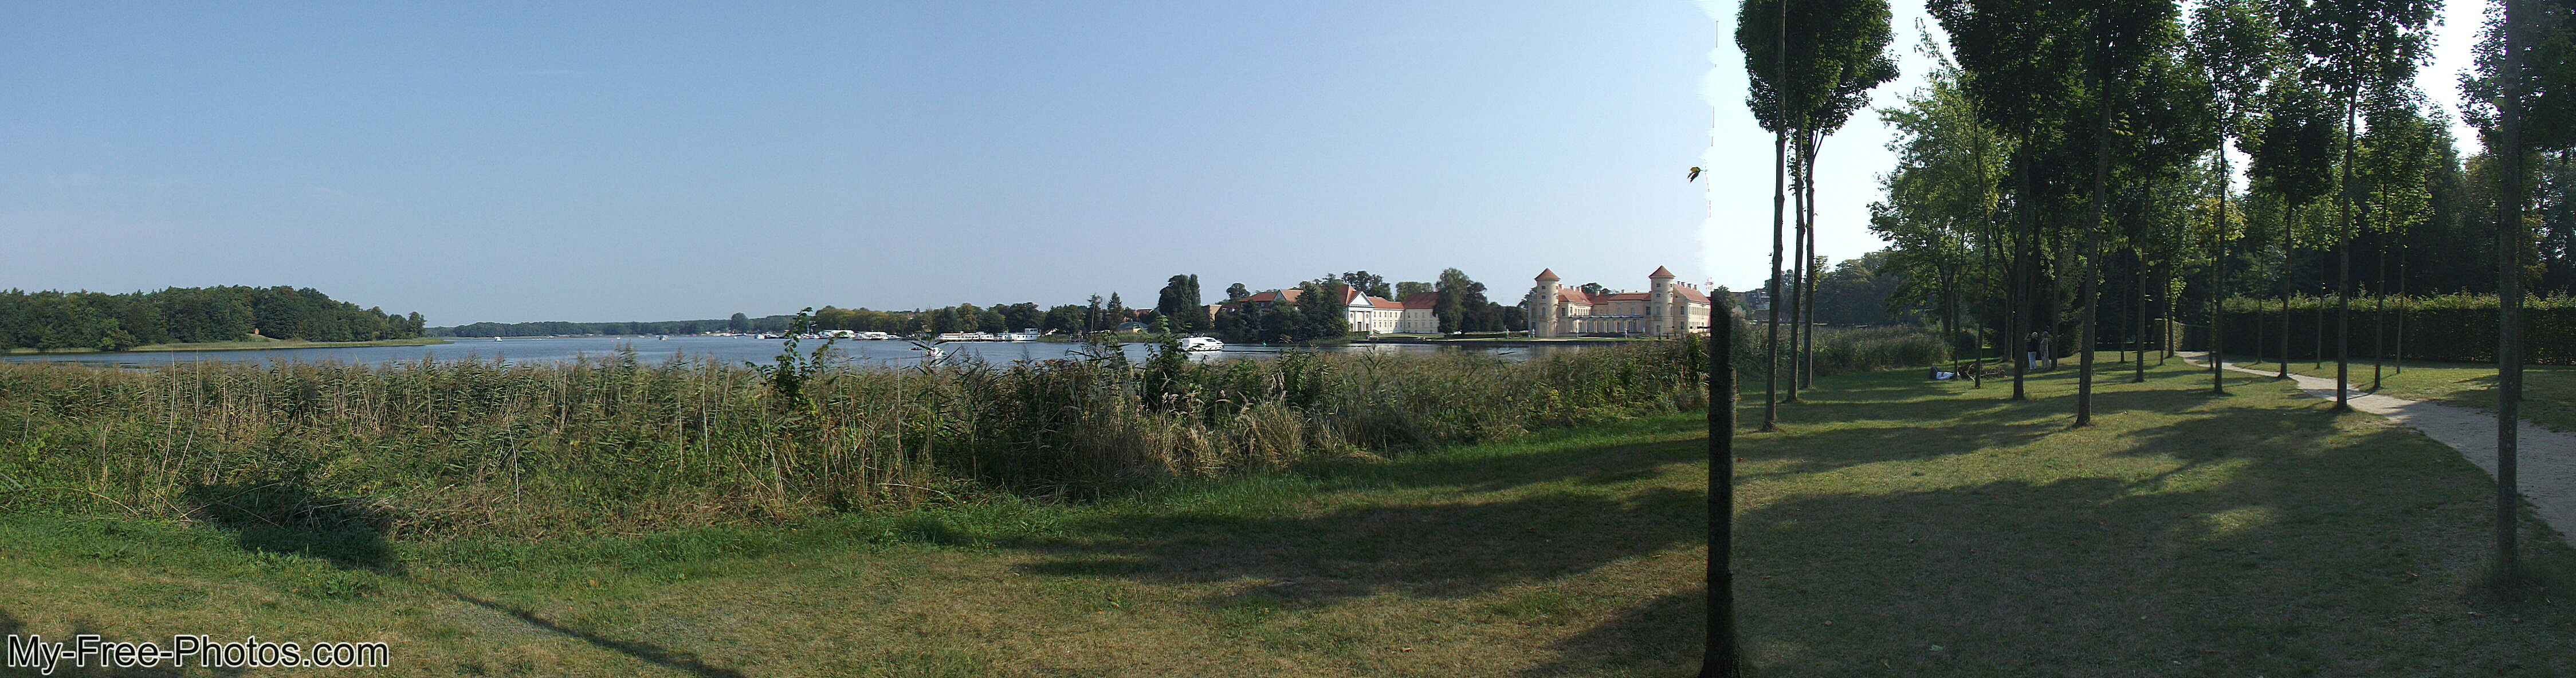 Rheinsberg,germany